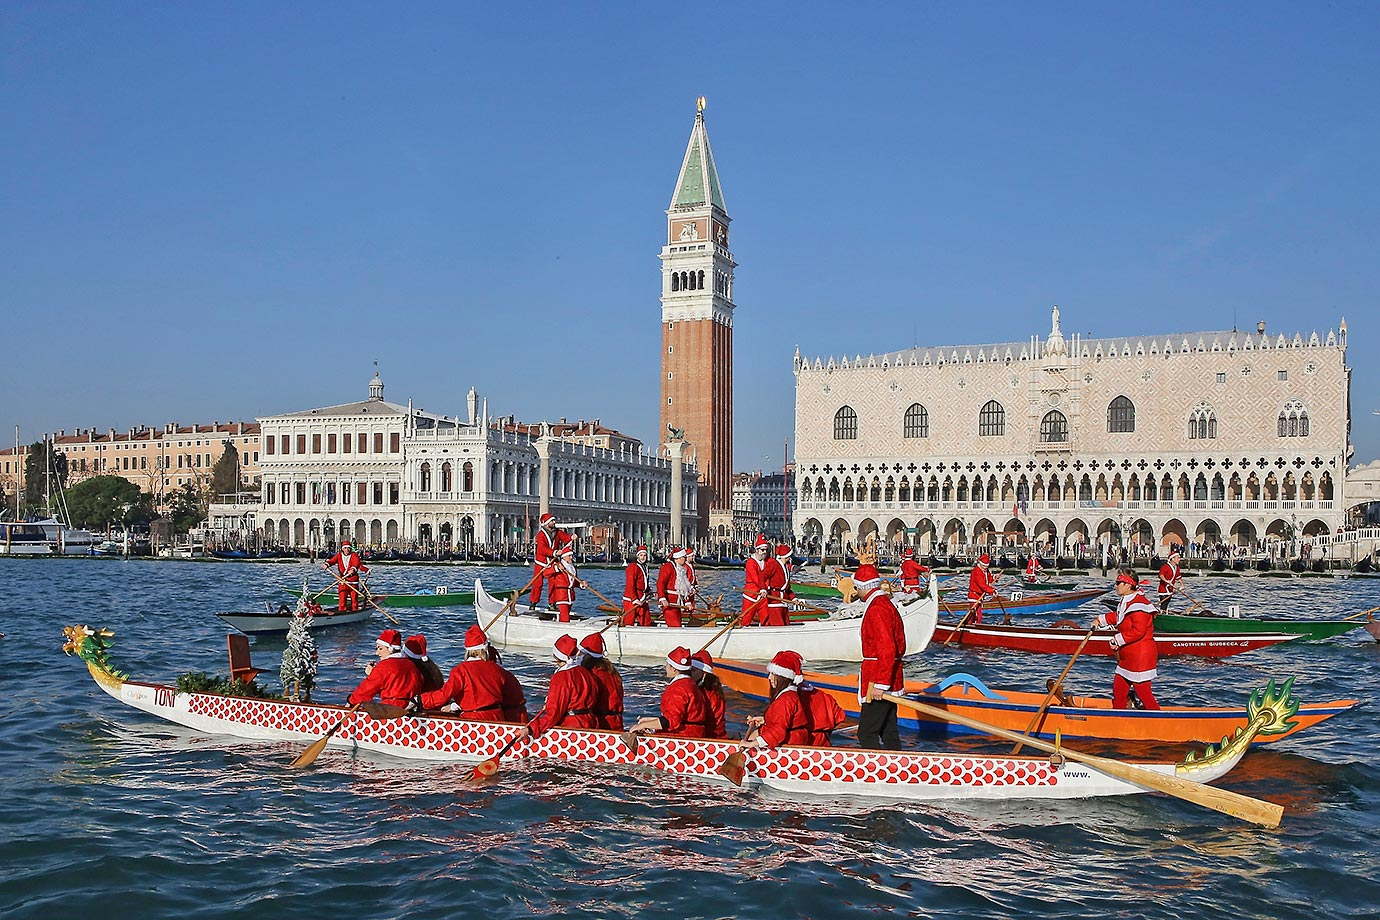 Rowers dressed as Santa get ready to race in the annual Father Christmas Regatta on the Grand Canal in Venice.